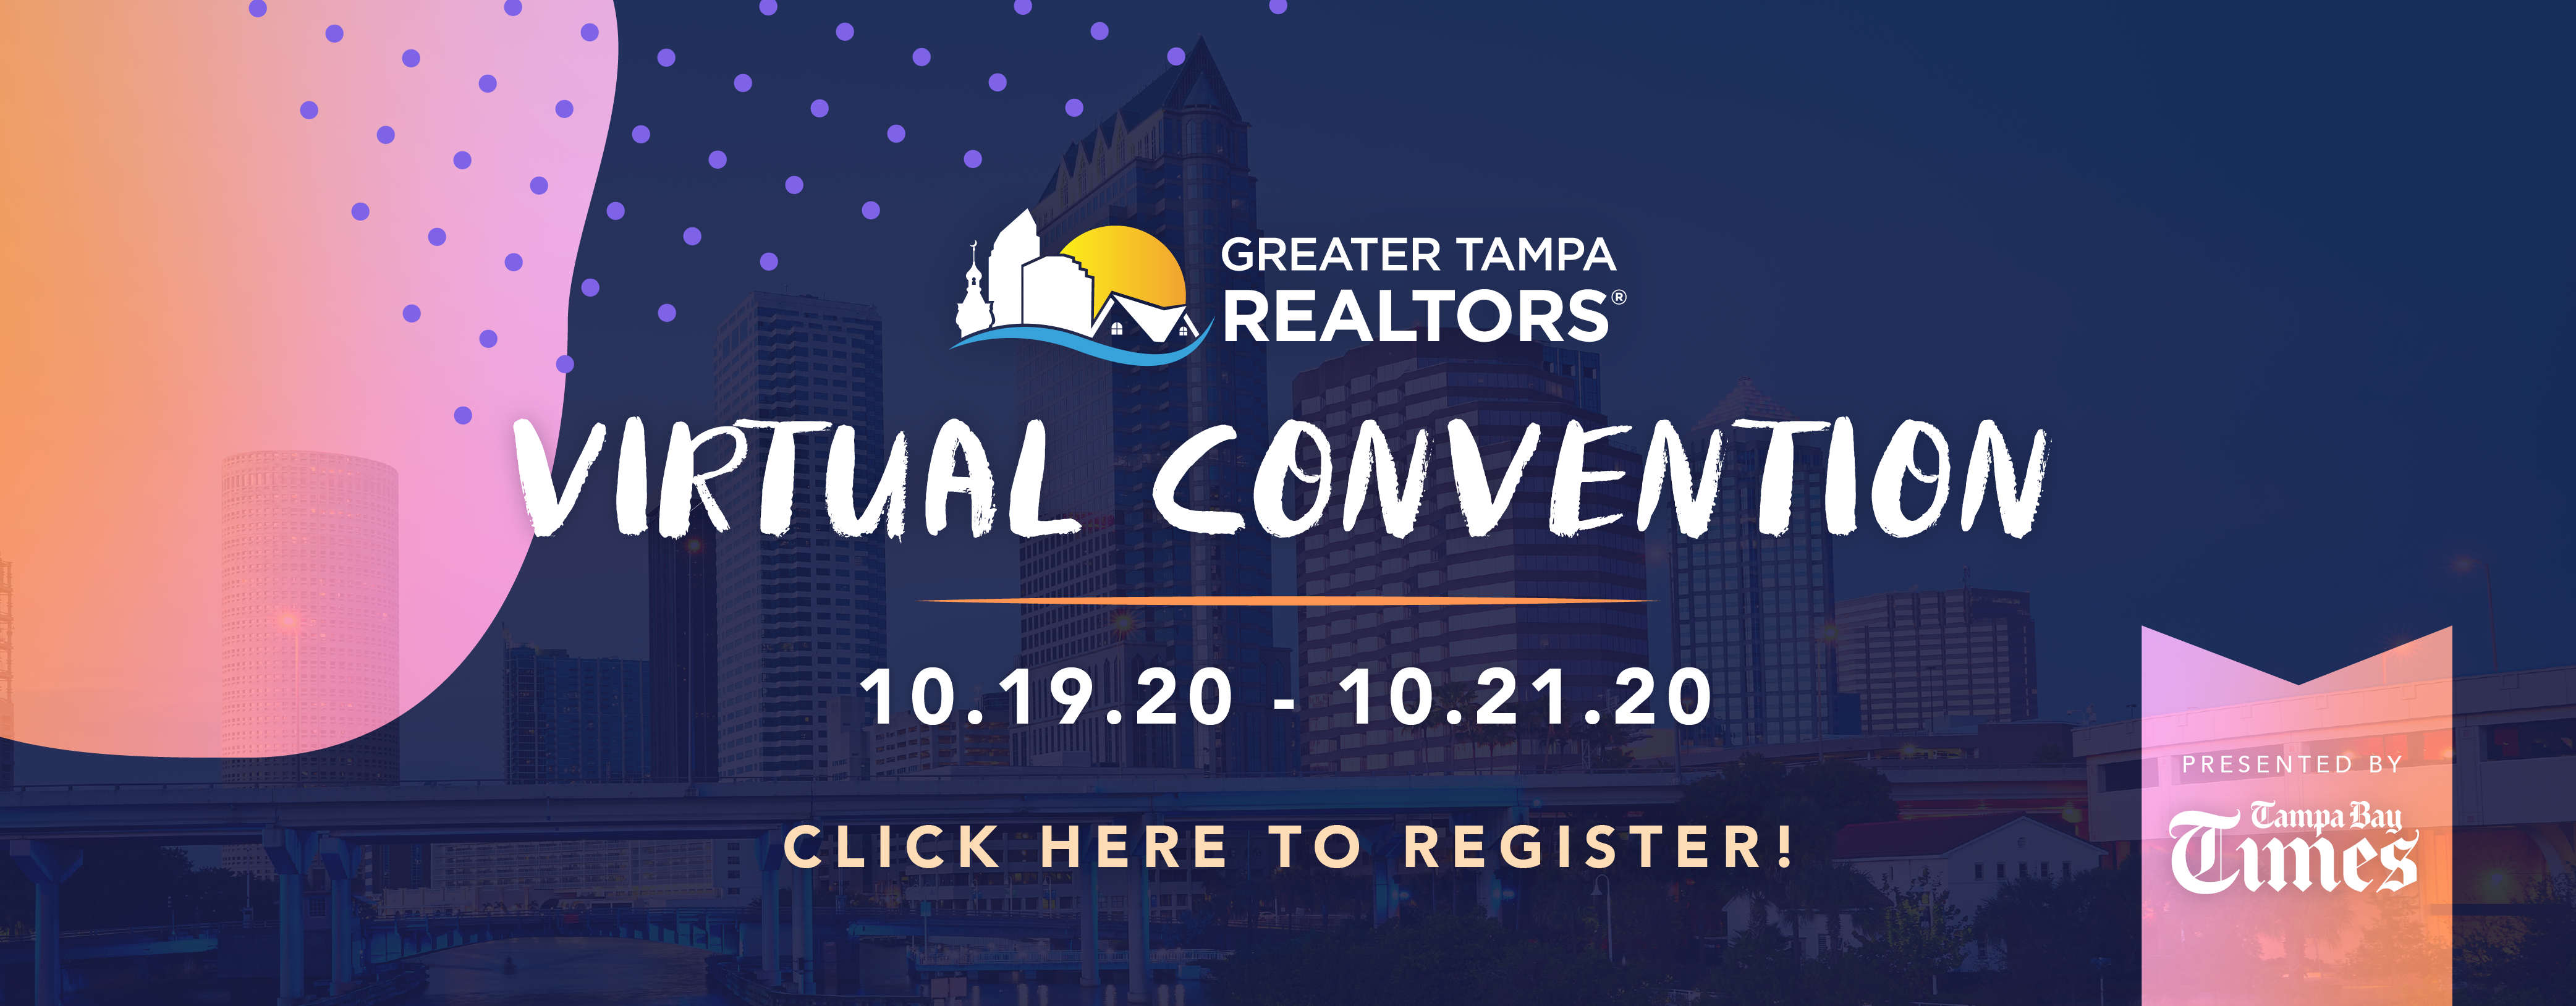 Greater Tampa Realtor Virtual Convention, October 19 - October 21 Presented by the Tampa Bay Times. Click here the image to sign up.